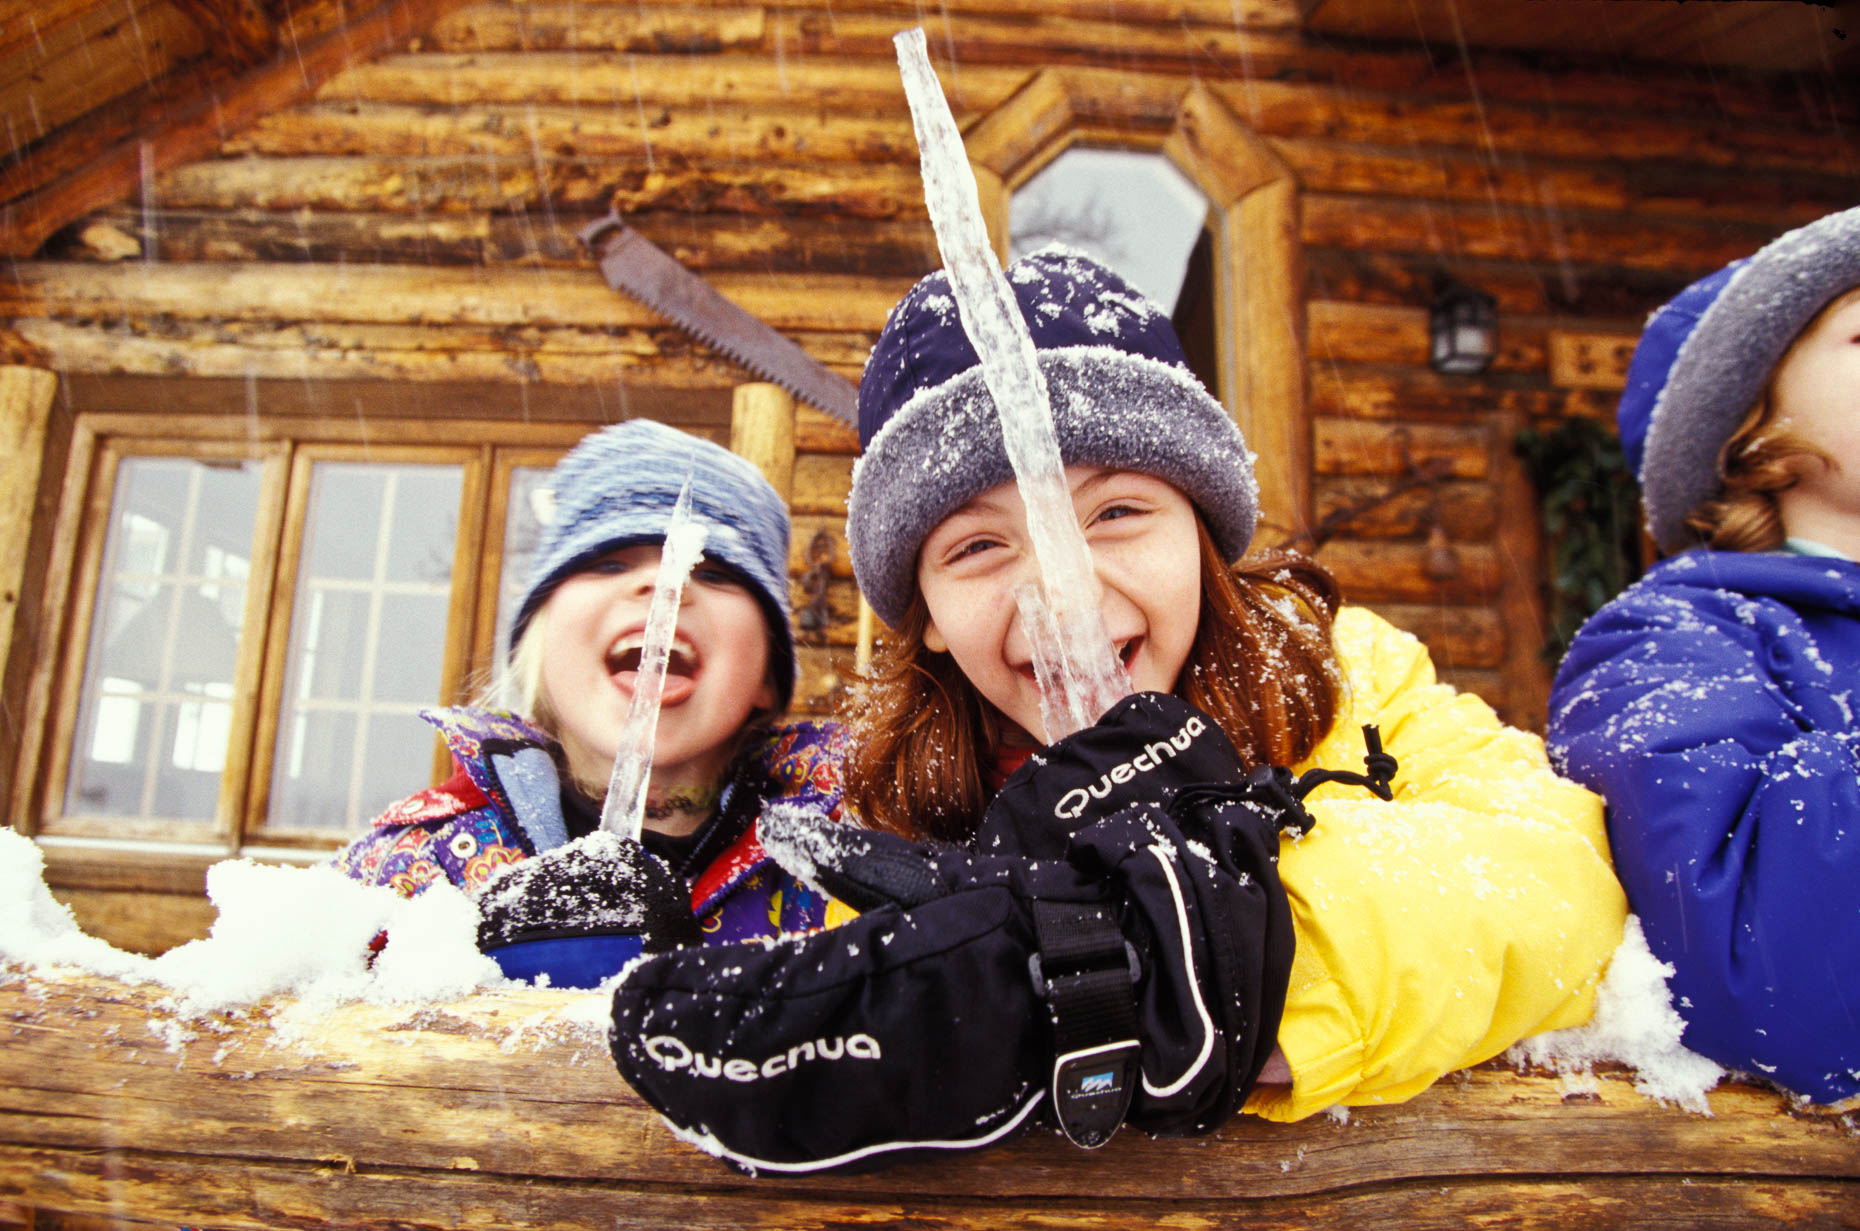 Girls licking icicle on porch of cabin at Vista Verde Ranch, Colorado by David Zaitz